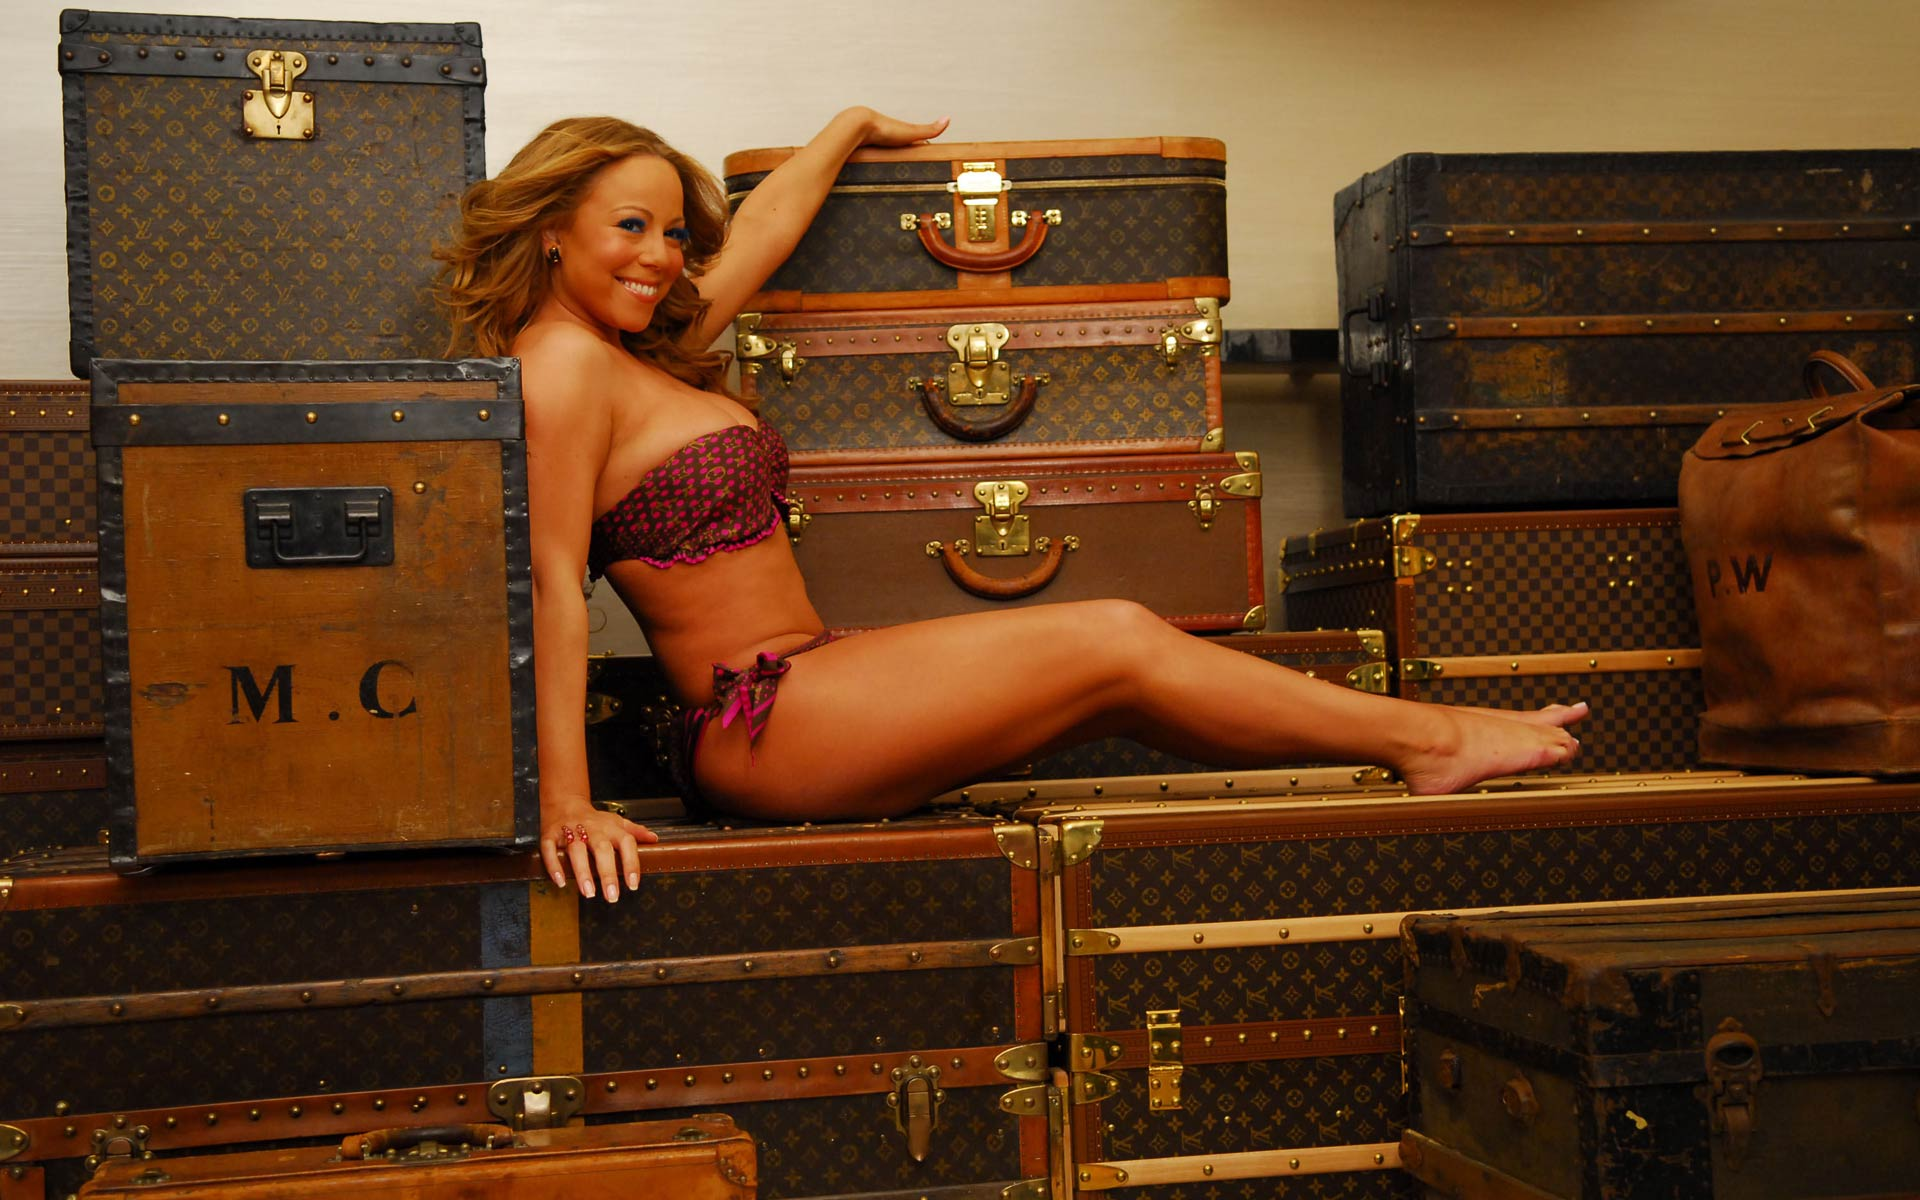 1920x1200 mariah carey Full HD Wallpaper and Background Image | 1920x1200 | ID ...